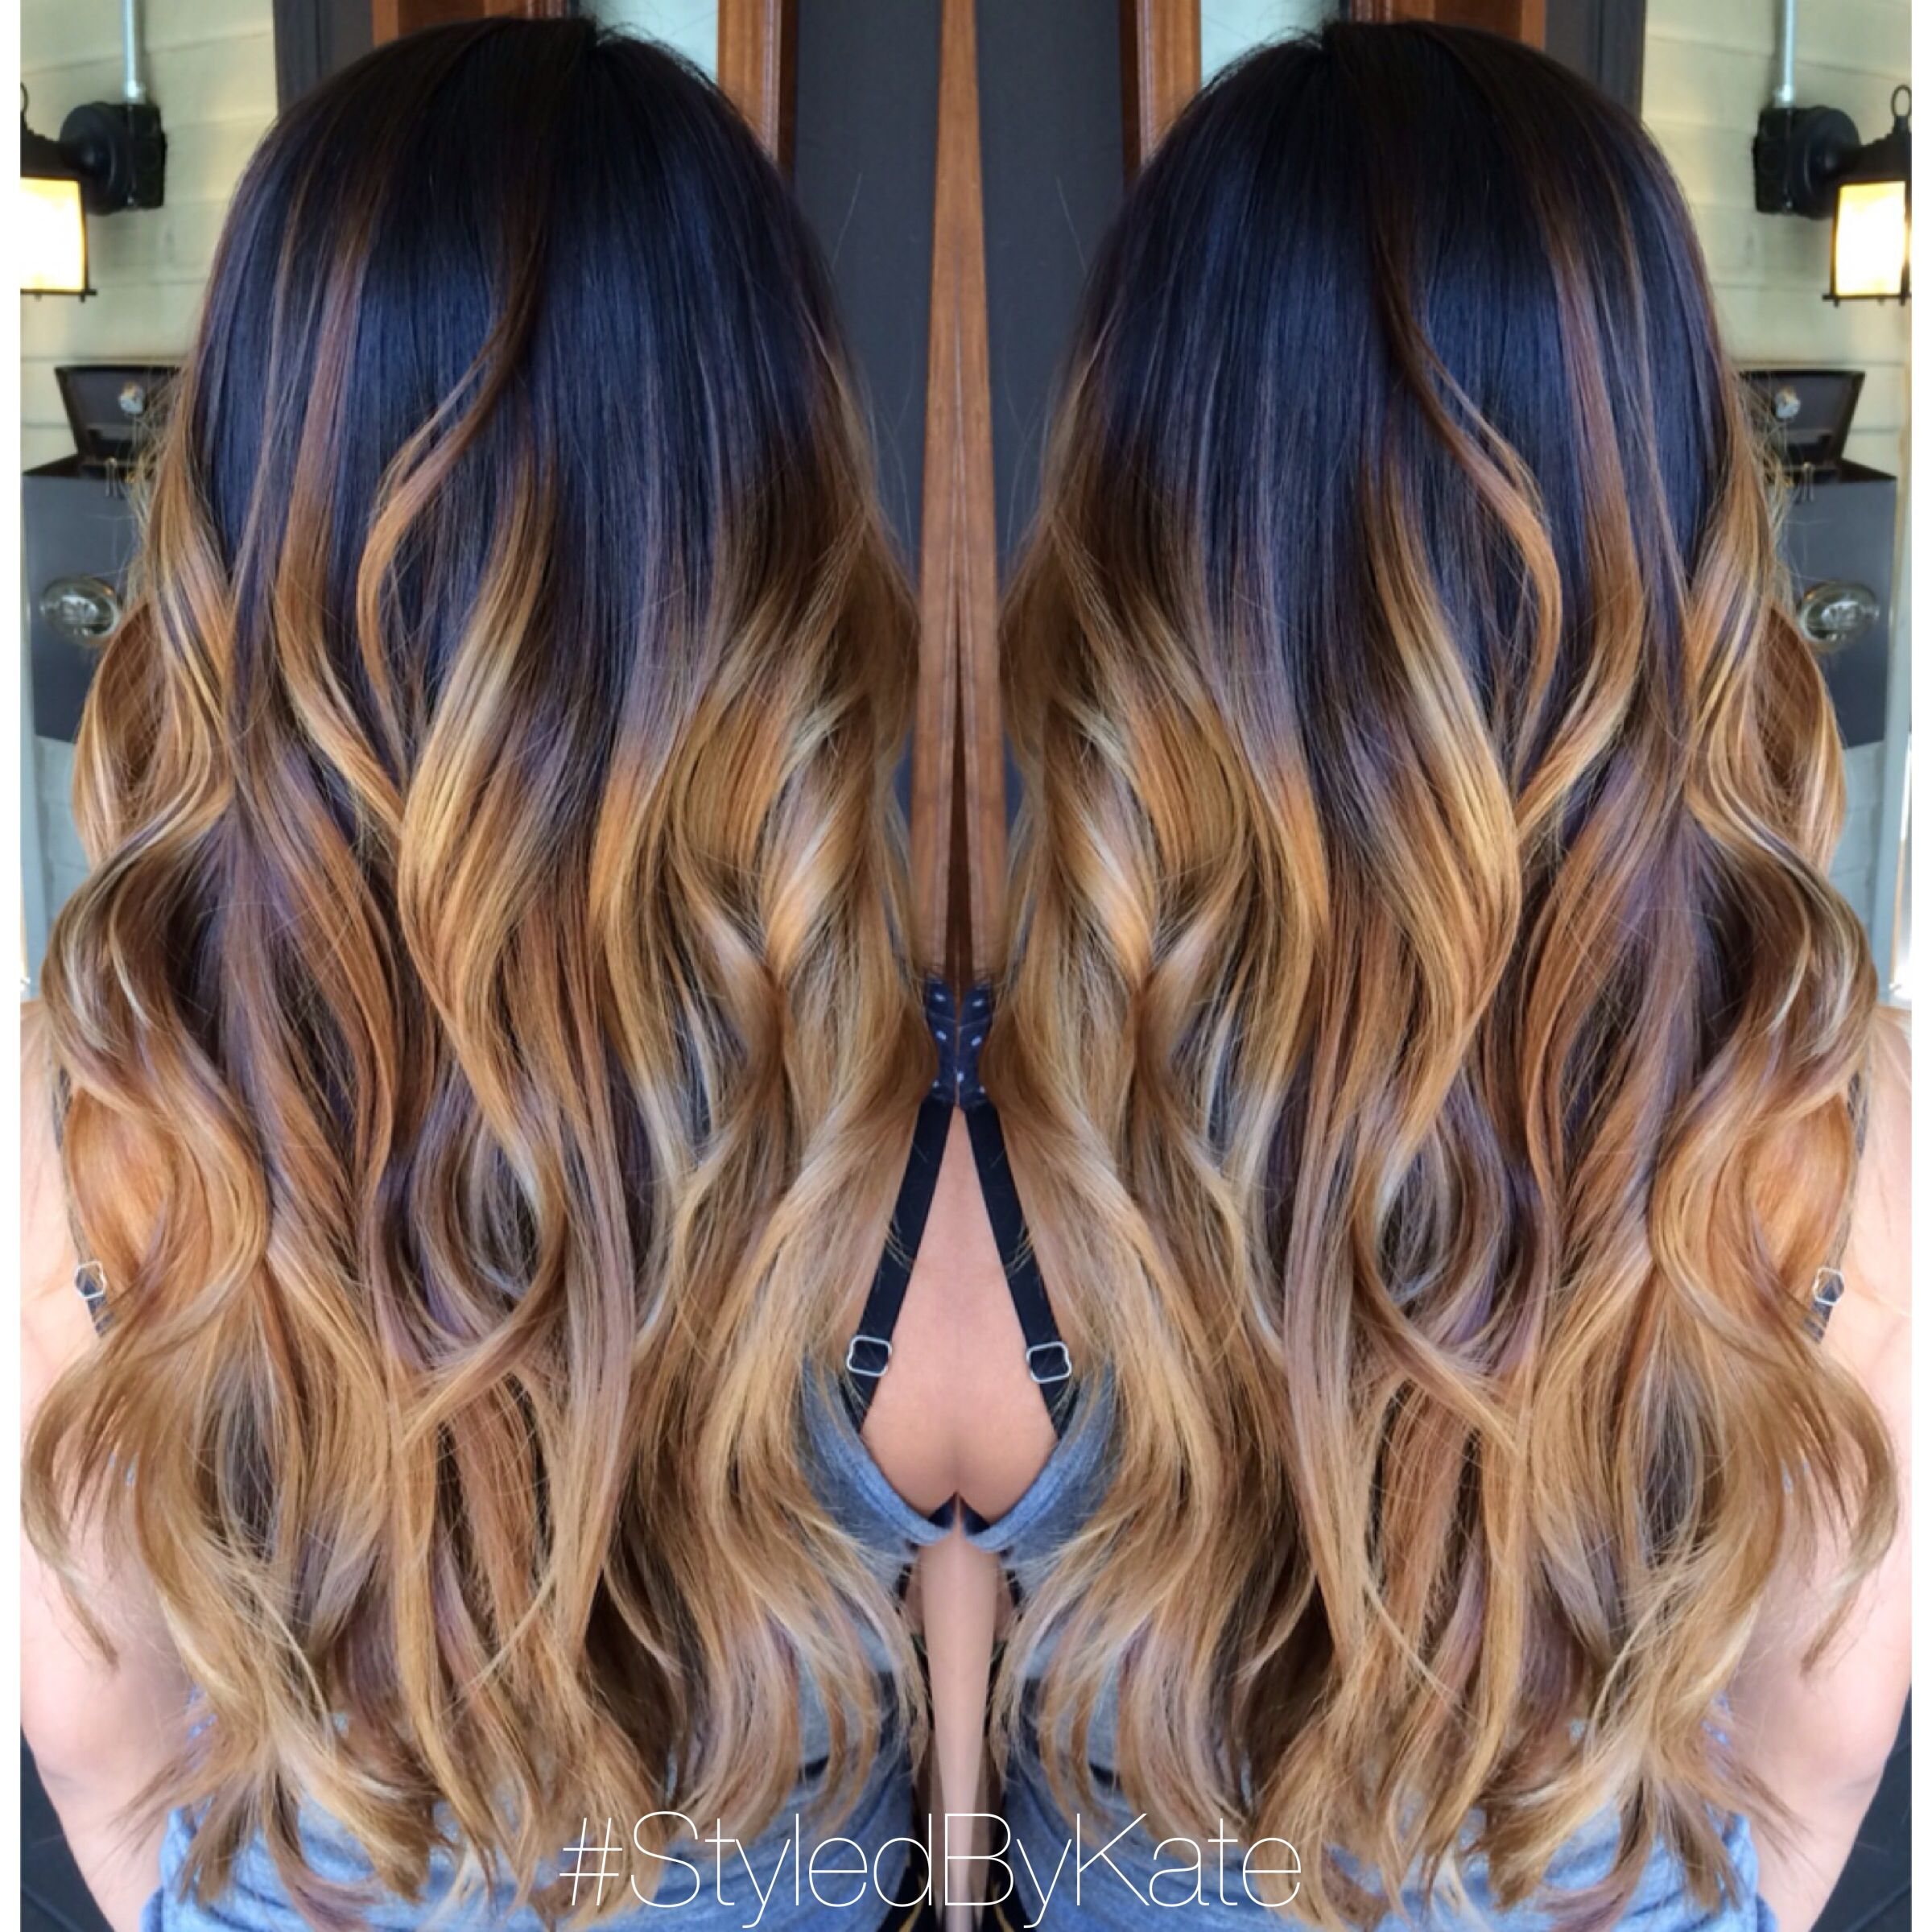 Blonde and caramel balayageombre over natural brunette hair blonde and caramel balayageombre over natural brunette hair loose curls and long layers solutioingenieria Gallery